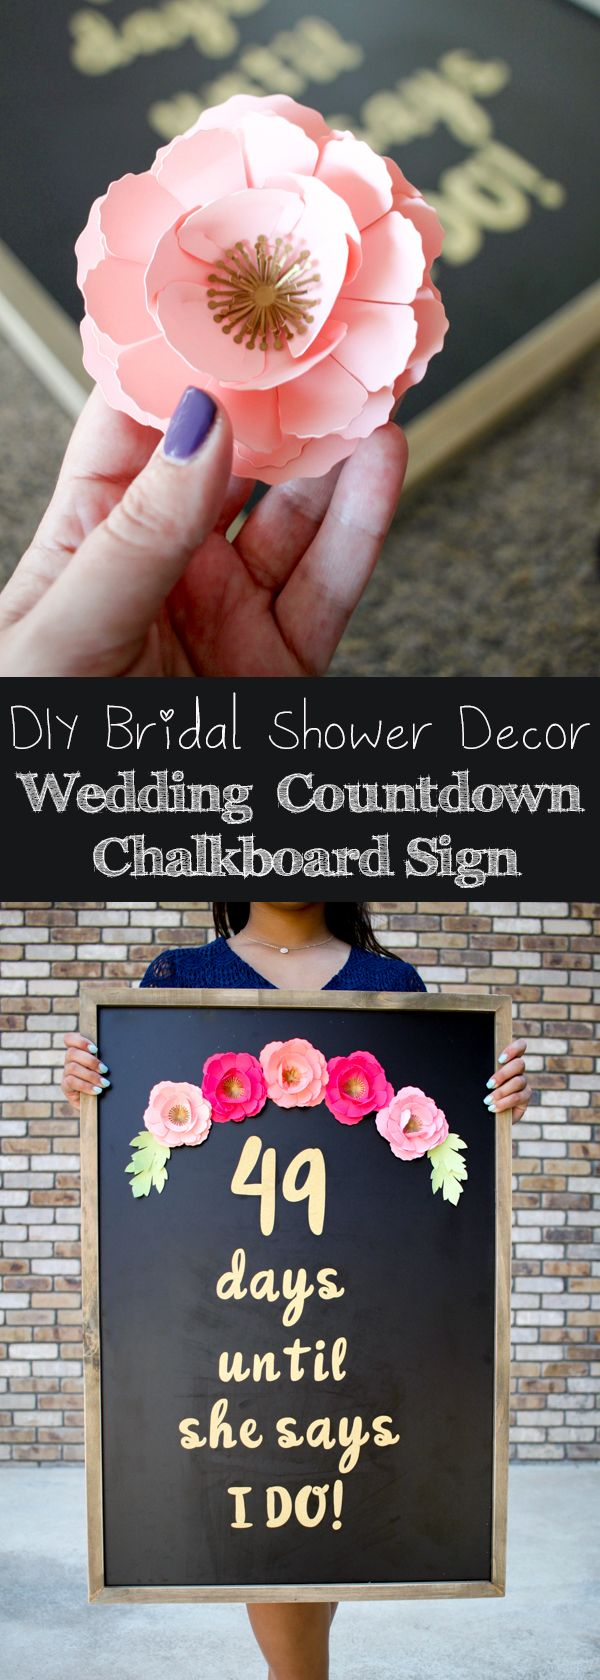 DIY Wedding Day Countdown Chalkboard Sign with